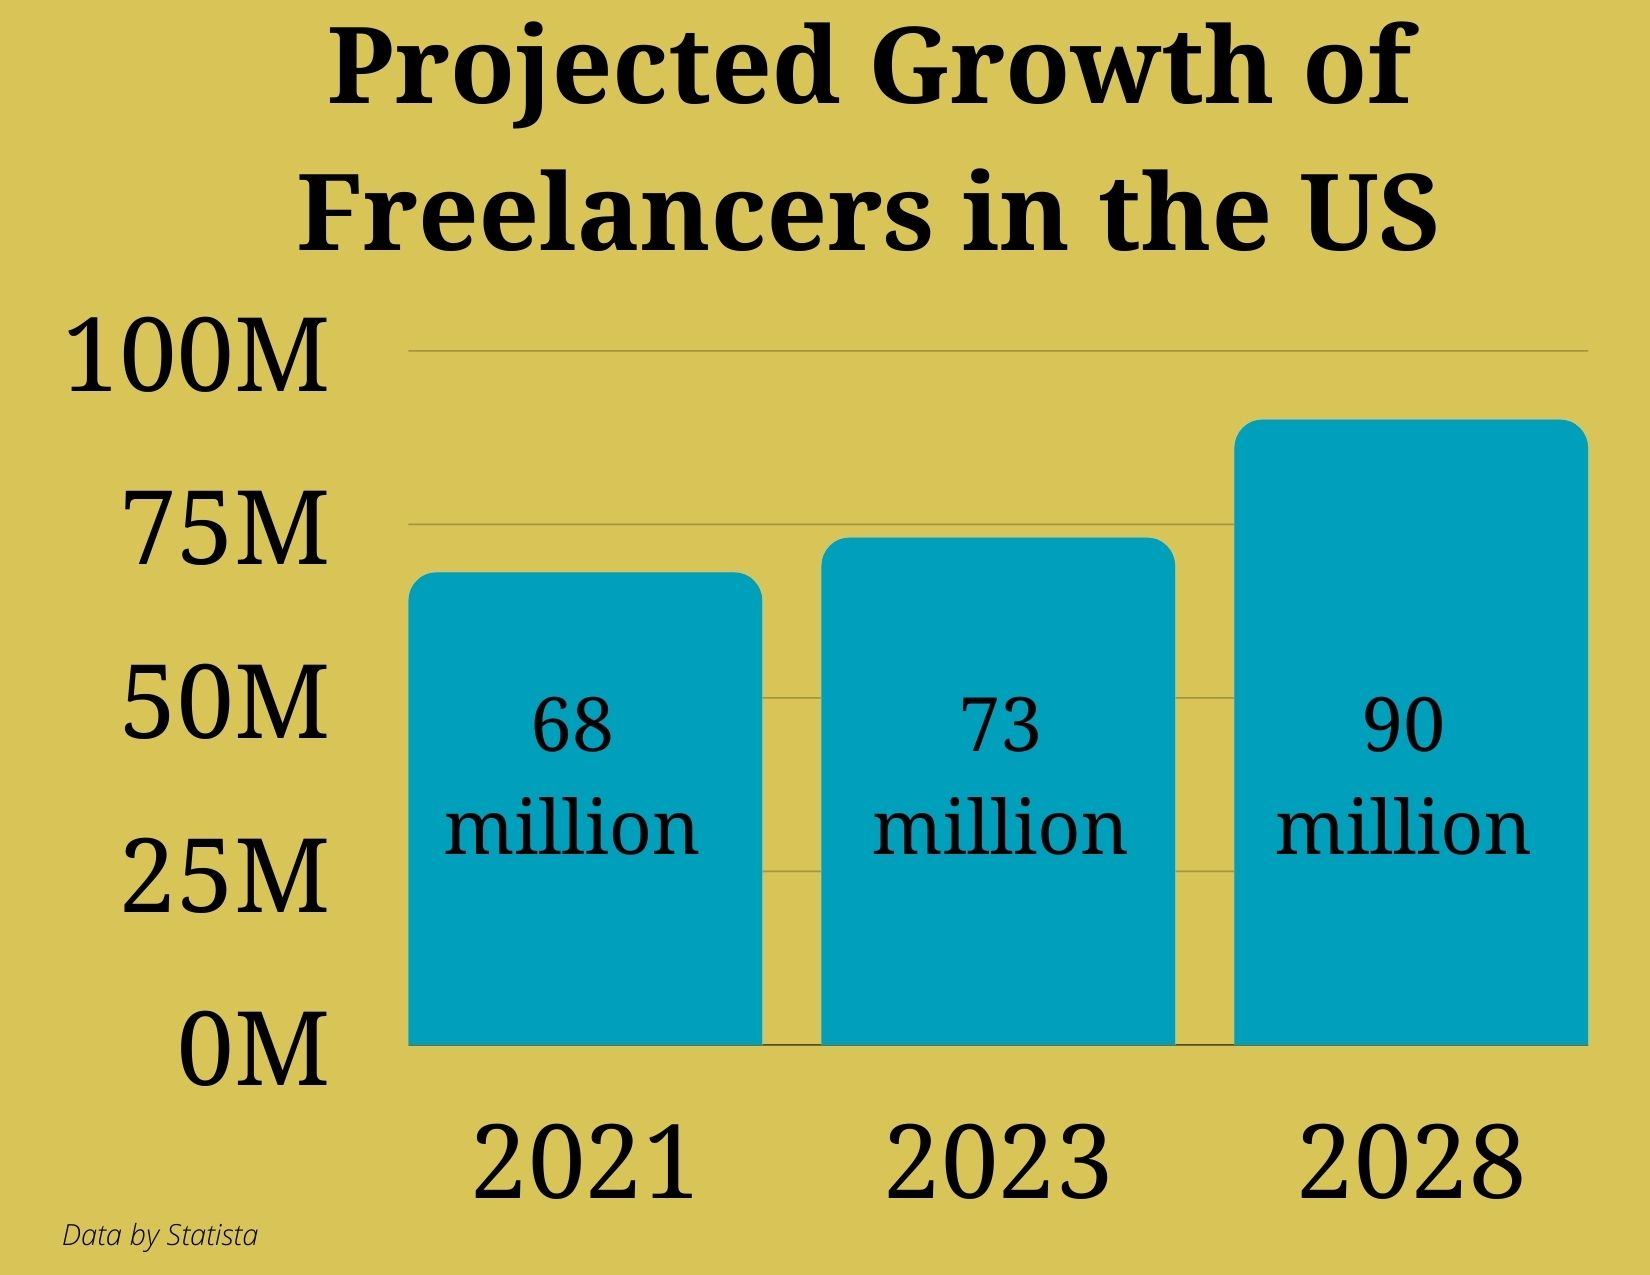 Freelancer-Projections